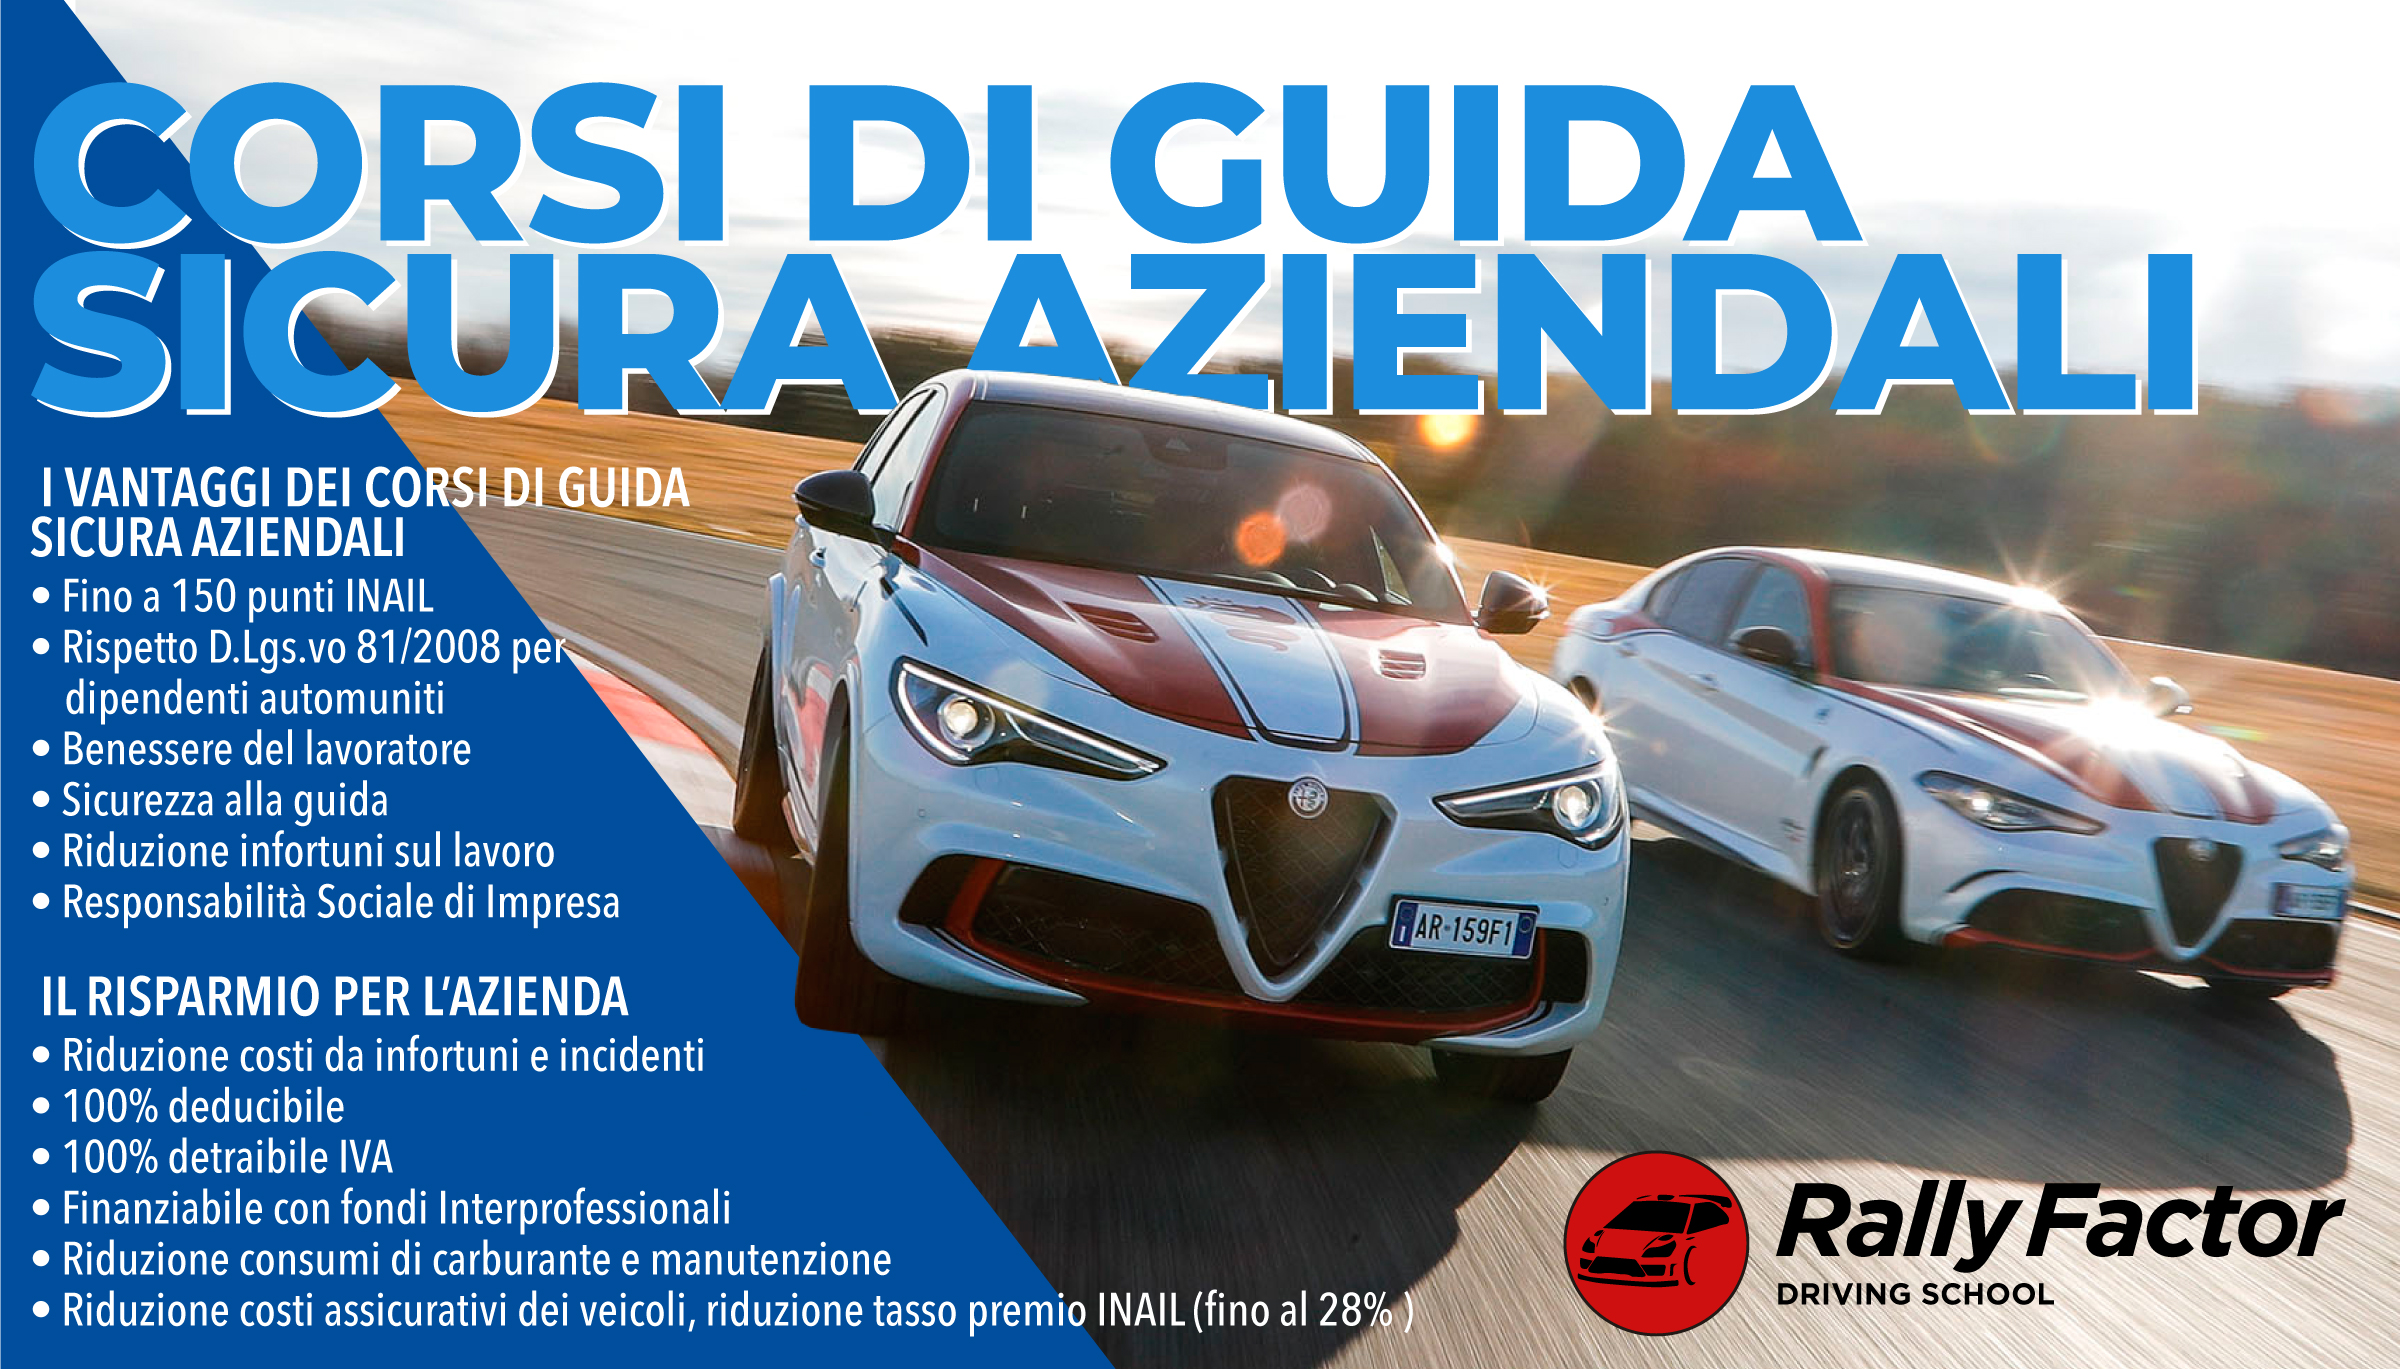 RALLY-Flyer v3 - PER SCHERMO E WEB